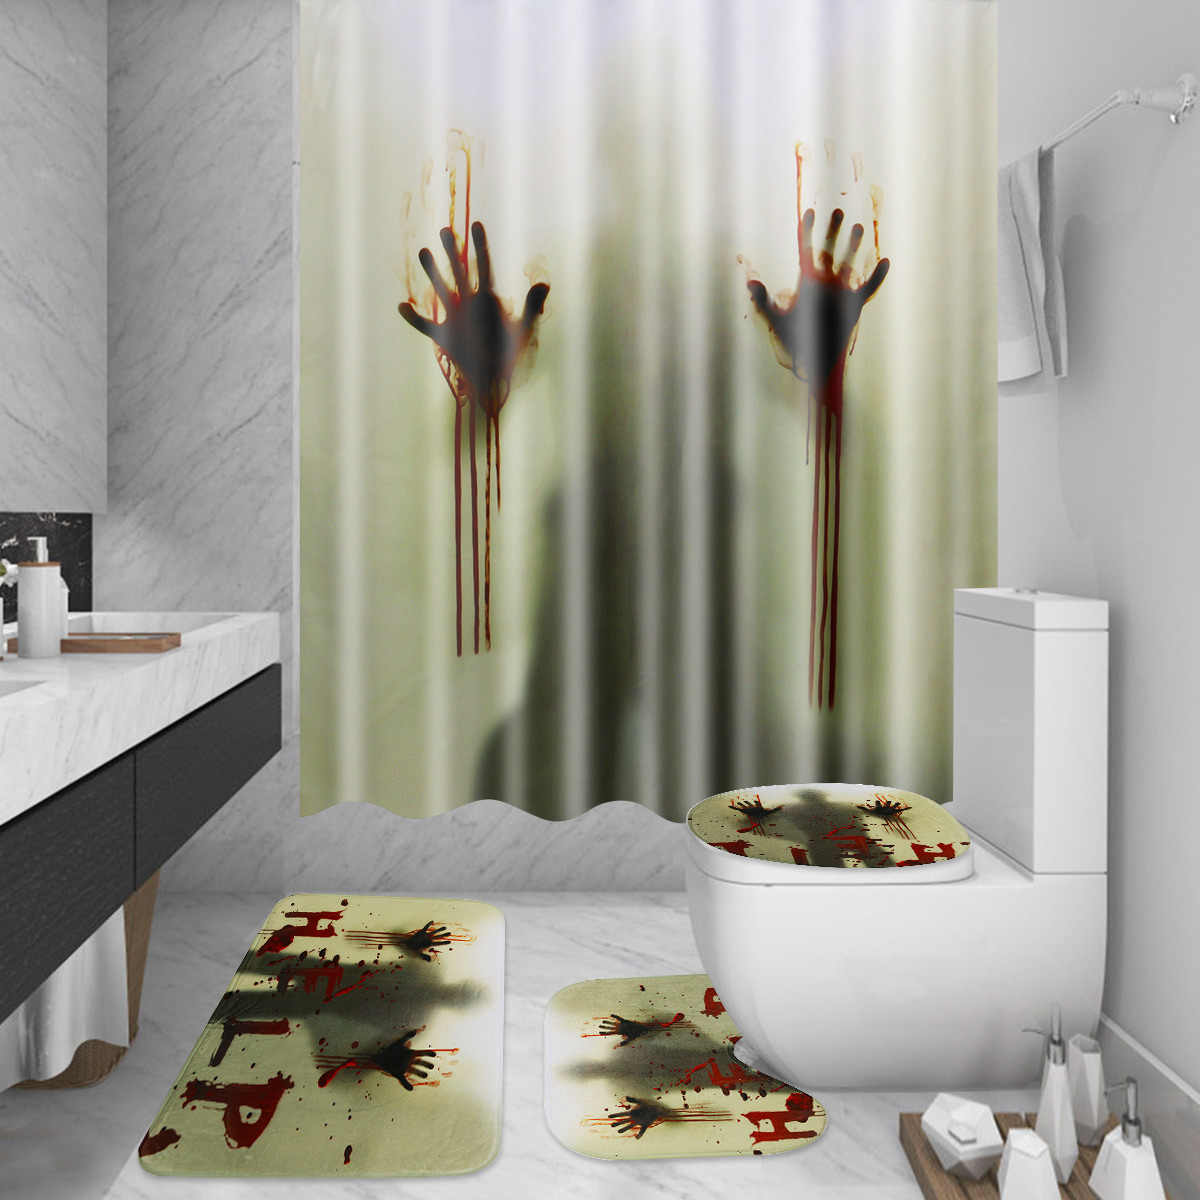 4PCS 180x180cm Bath Waterproof Curtain Scary Creepy Bloody Hand Shower Curtain Halloween +Floor Mat+12 Hooks Home Bathroom Decor